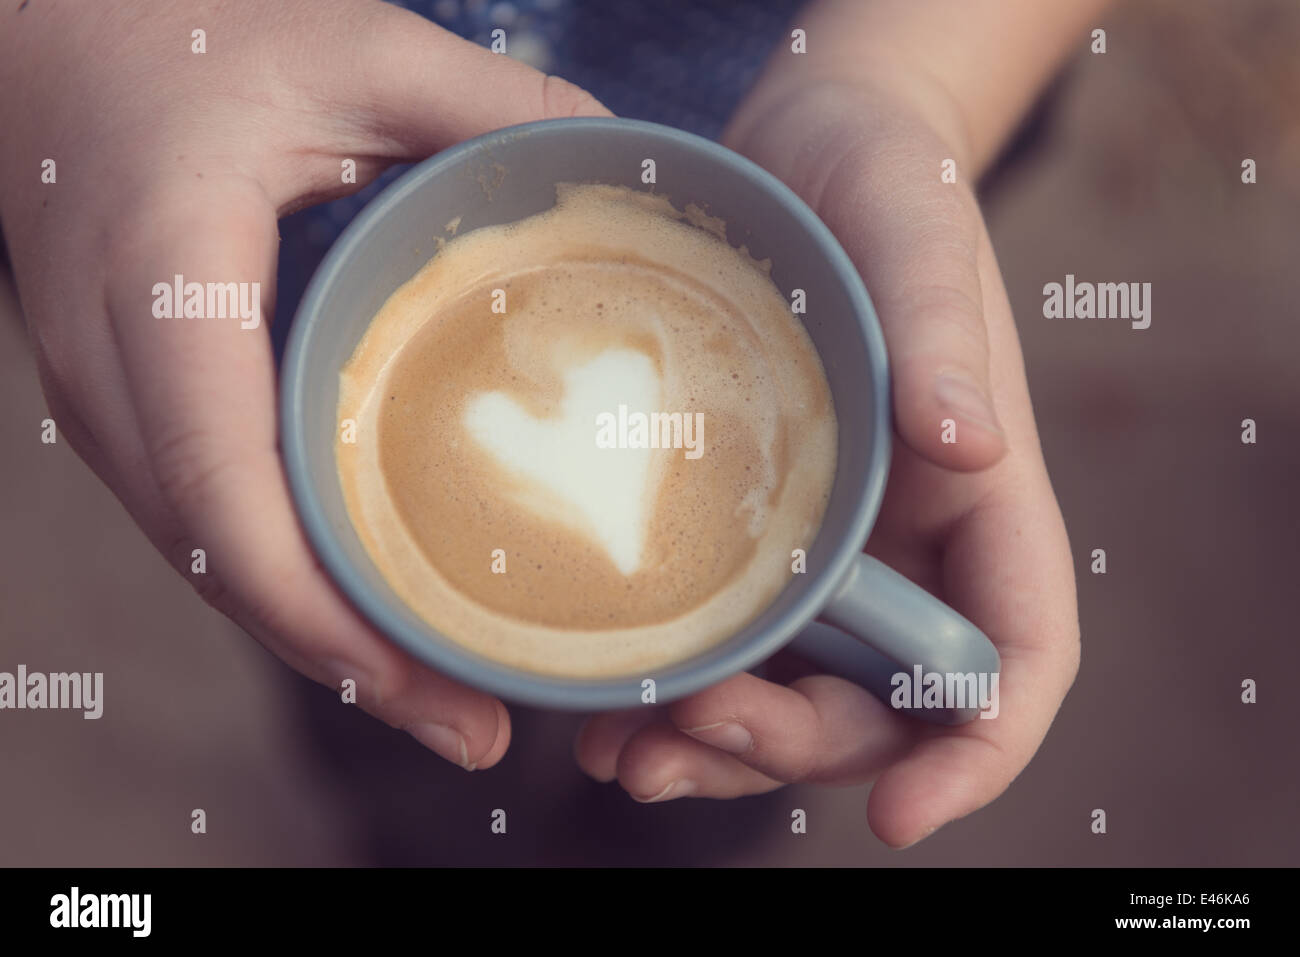 hands holding a grey cup with a love heart shape in the crema - Stock Image